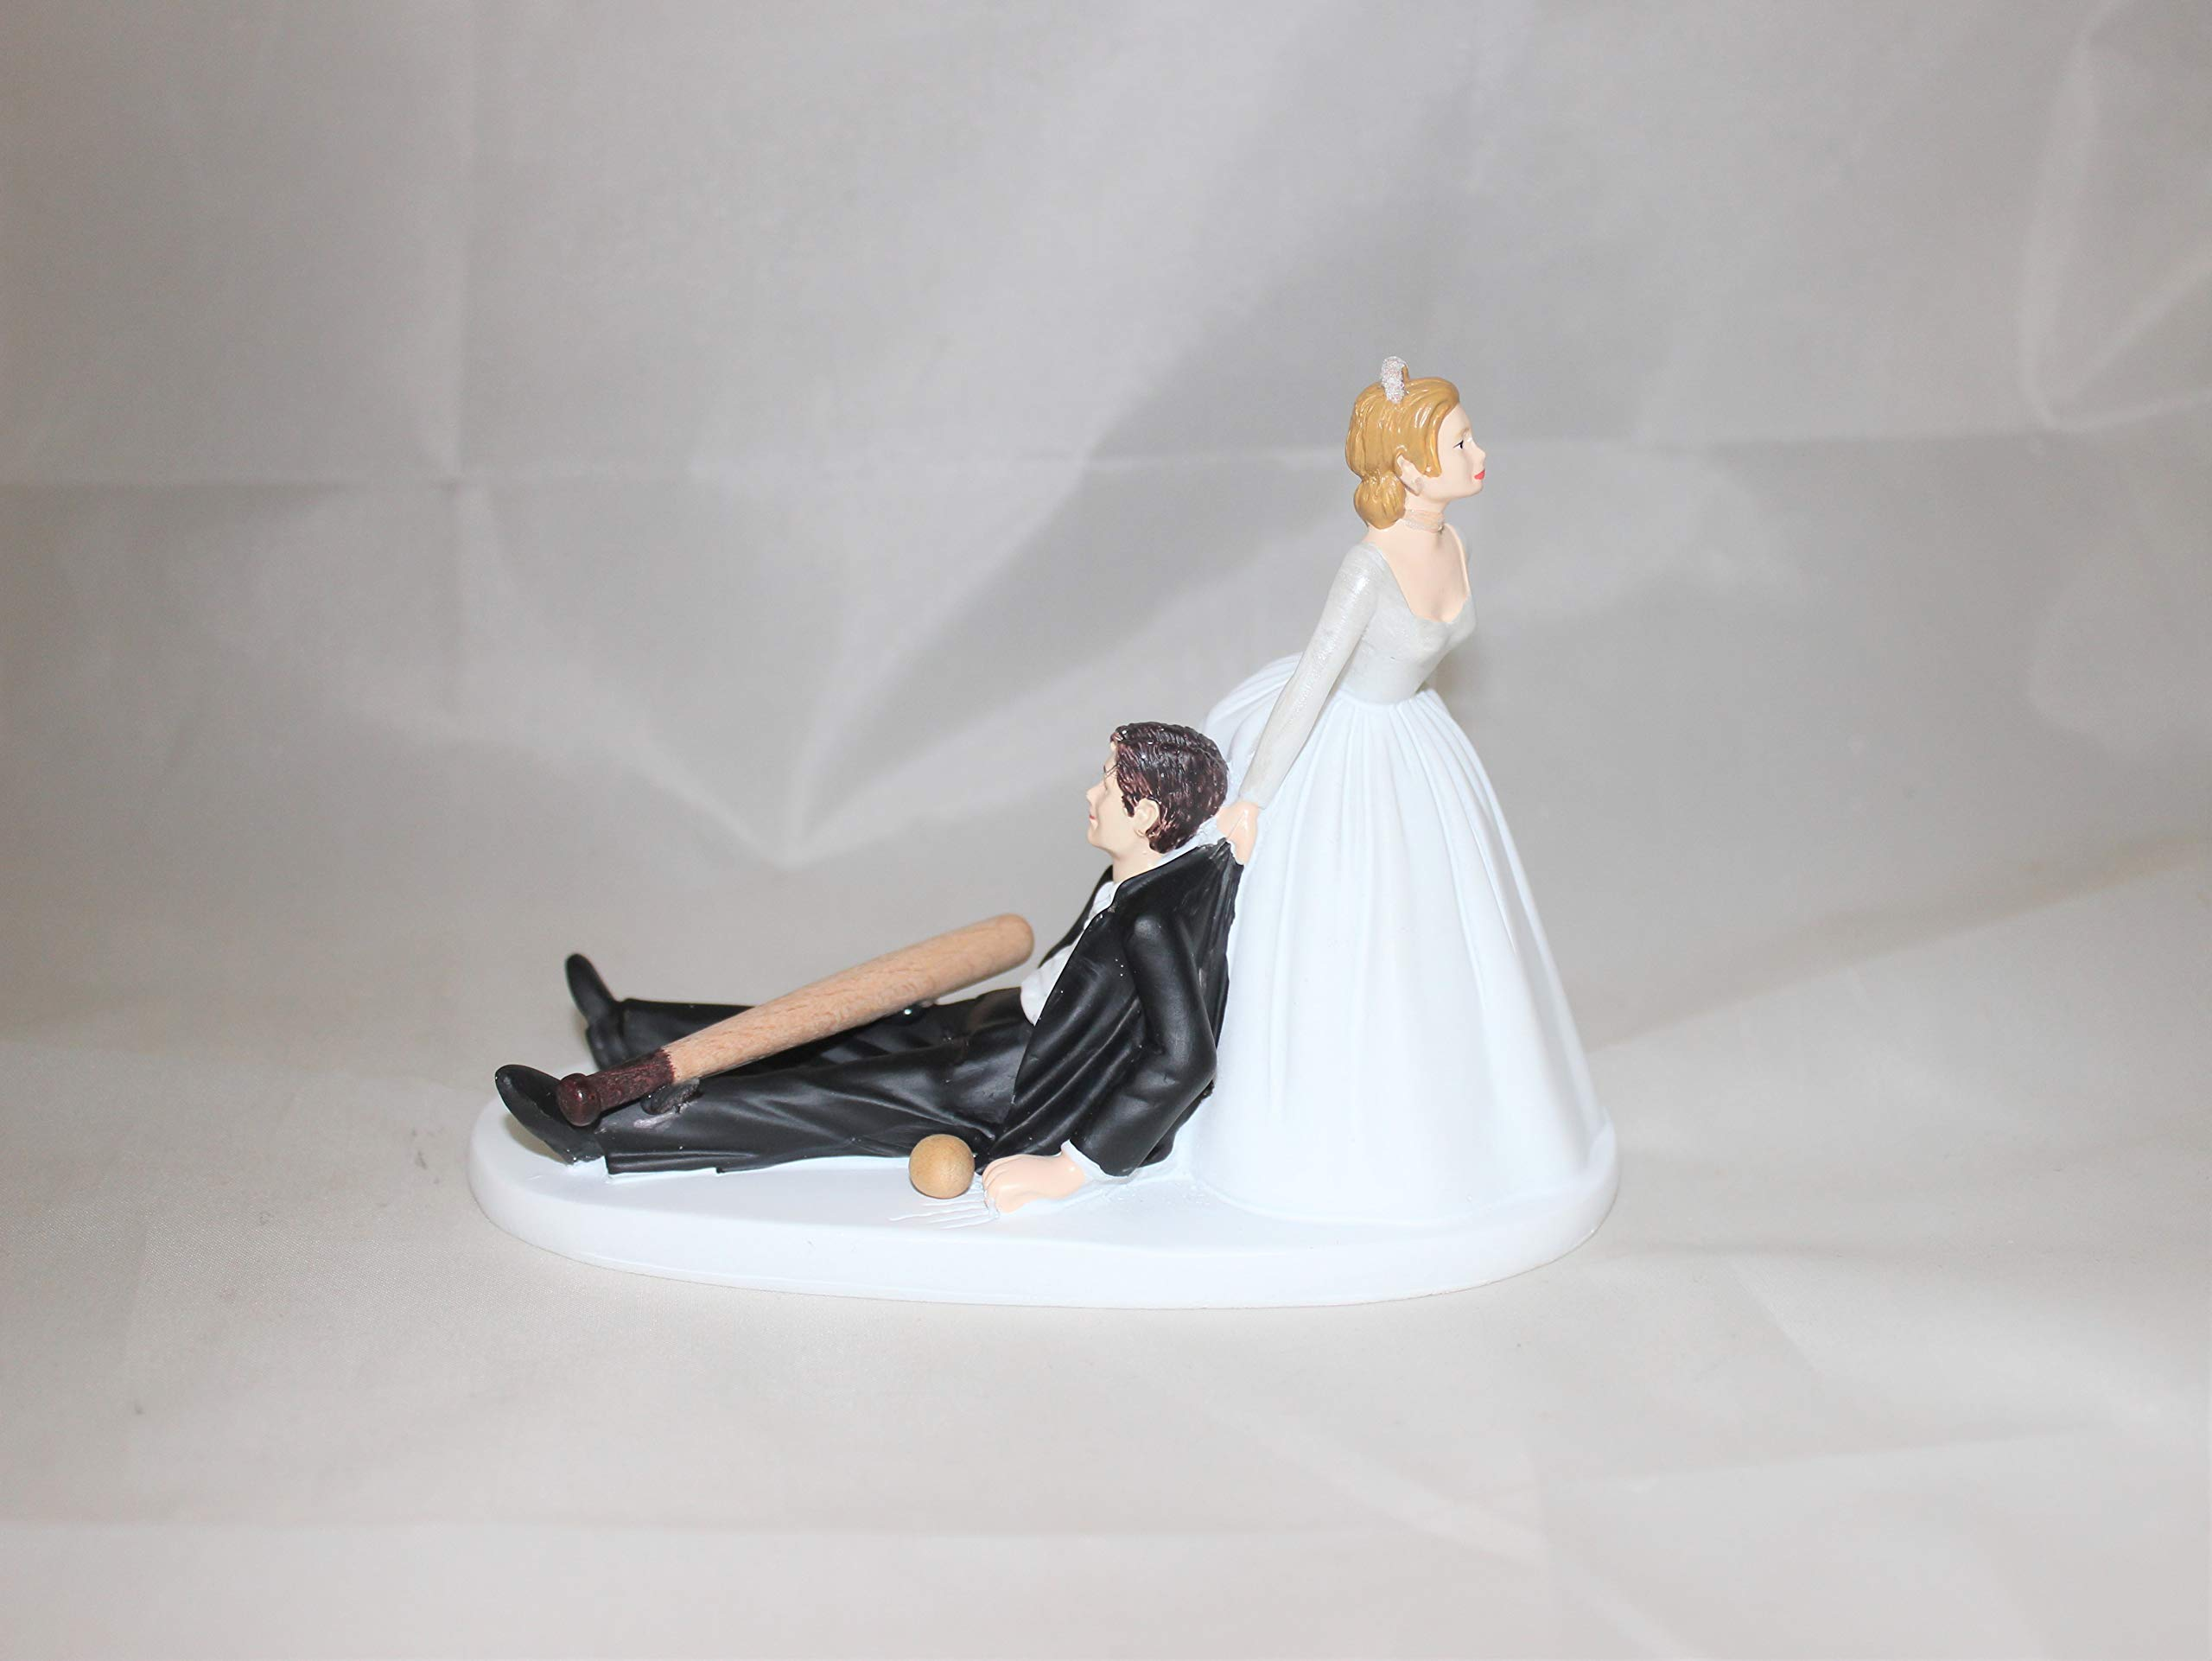 Wedding Party Reception Ball and Bat Baseball player Cake Topper by Custom Designed by Suzanne